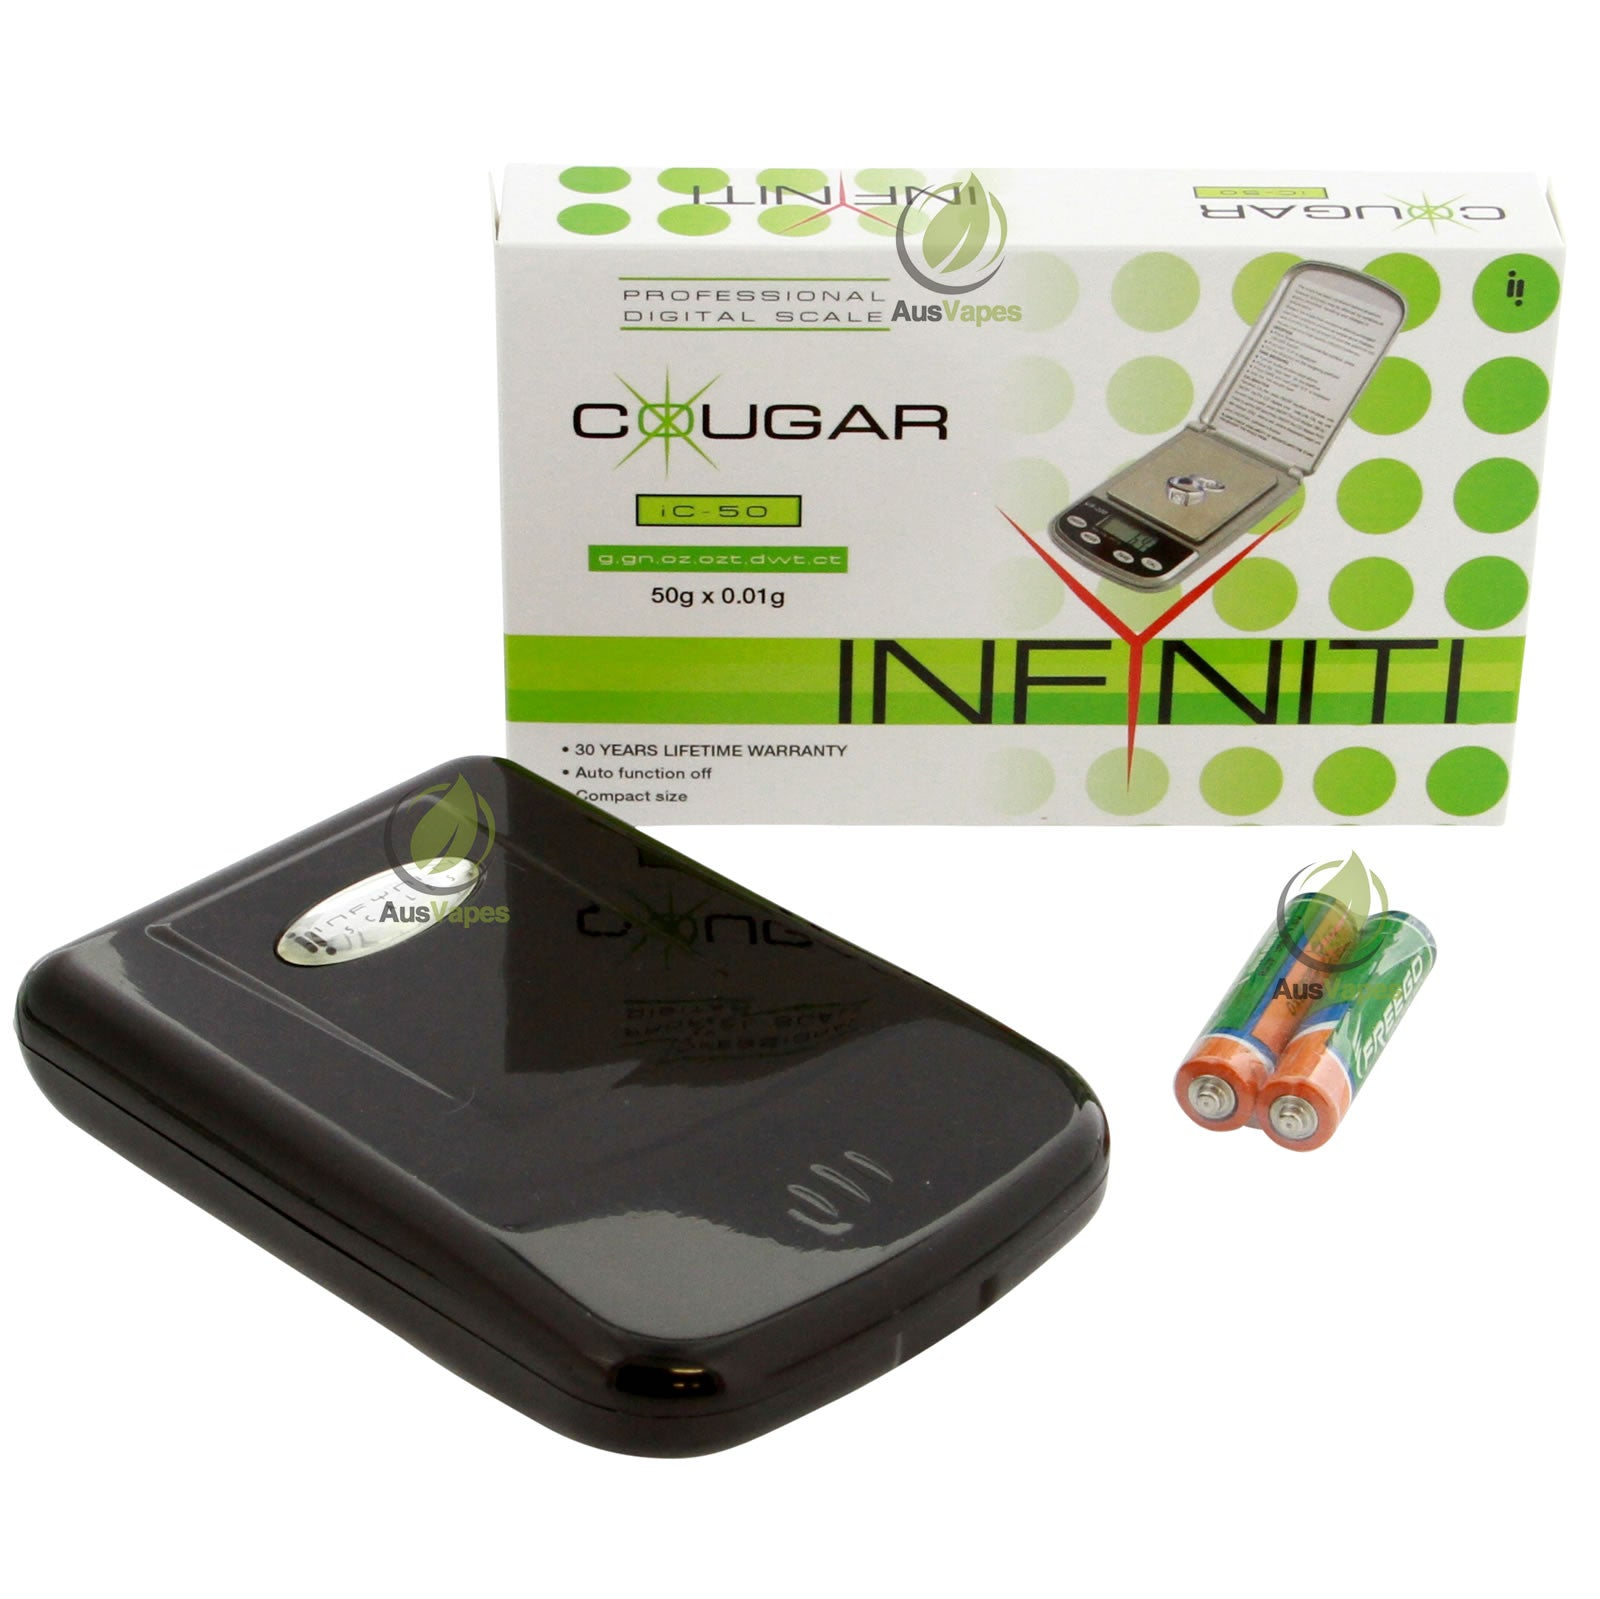 DISCONTINUED Infyniti IC-50 Cougar Digital Pocket Scale 50g x 0.01g